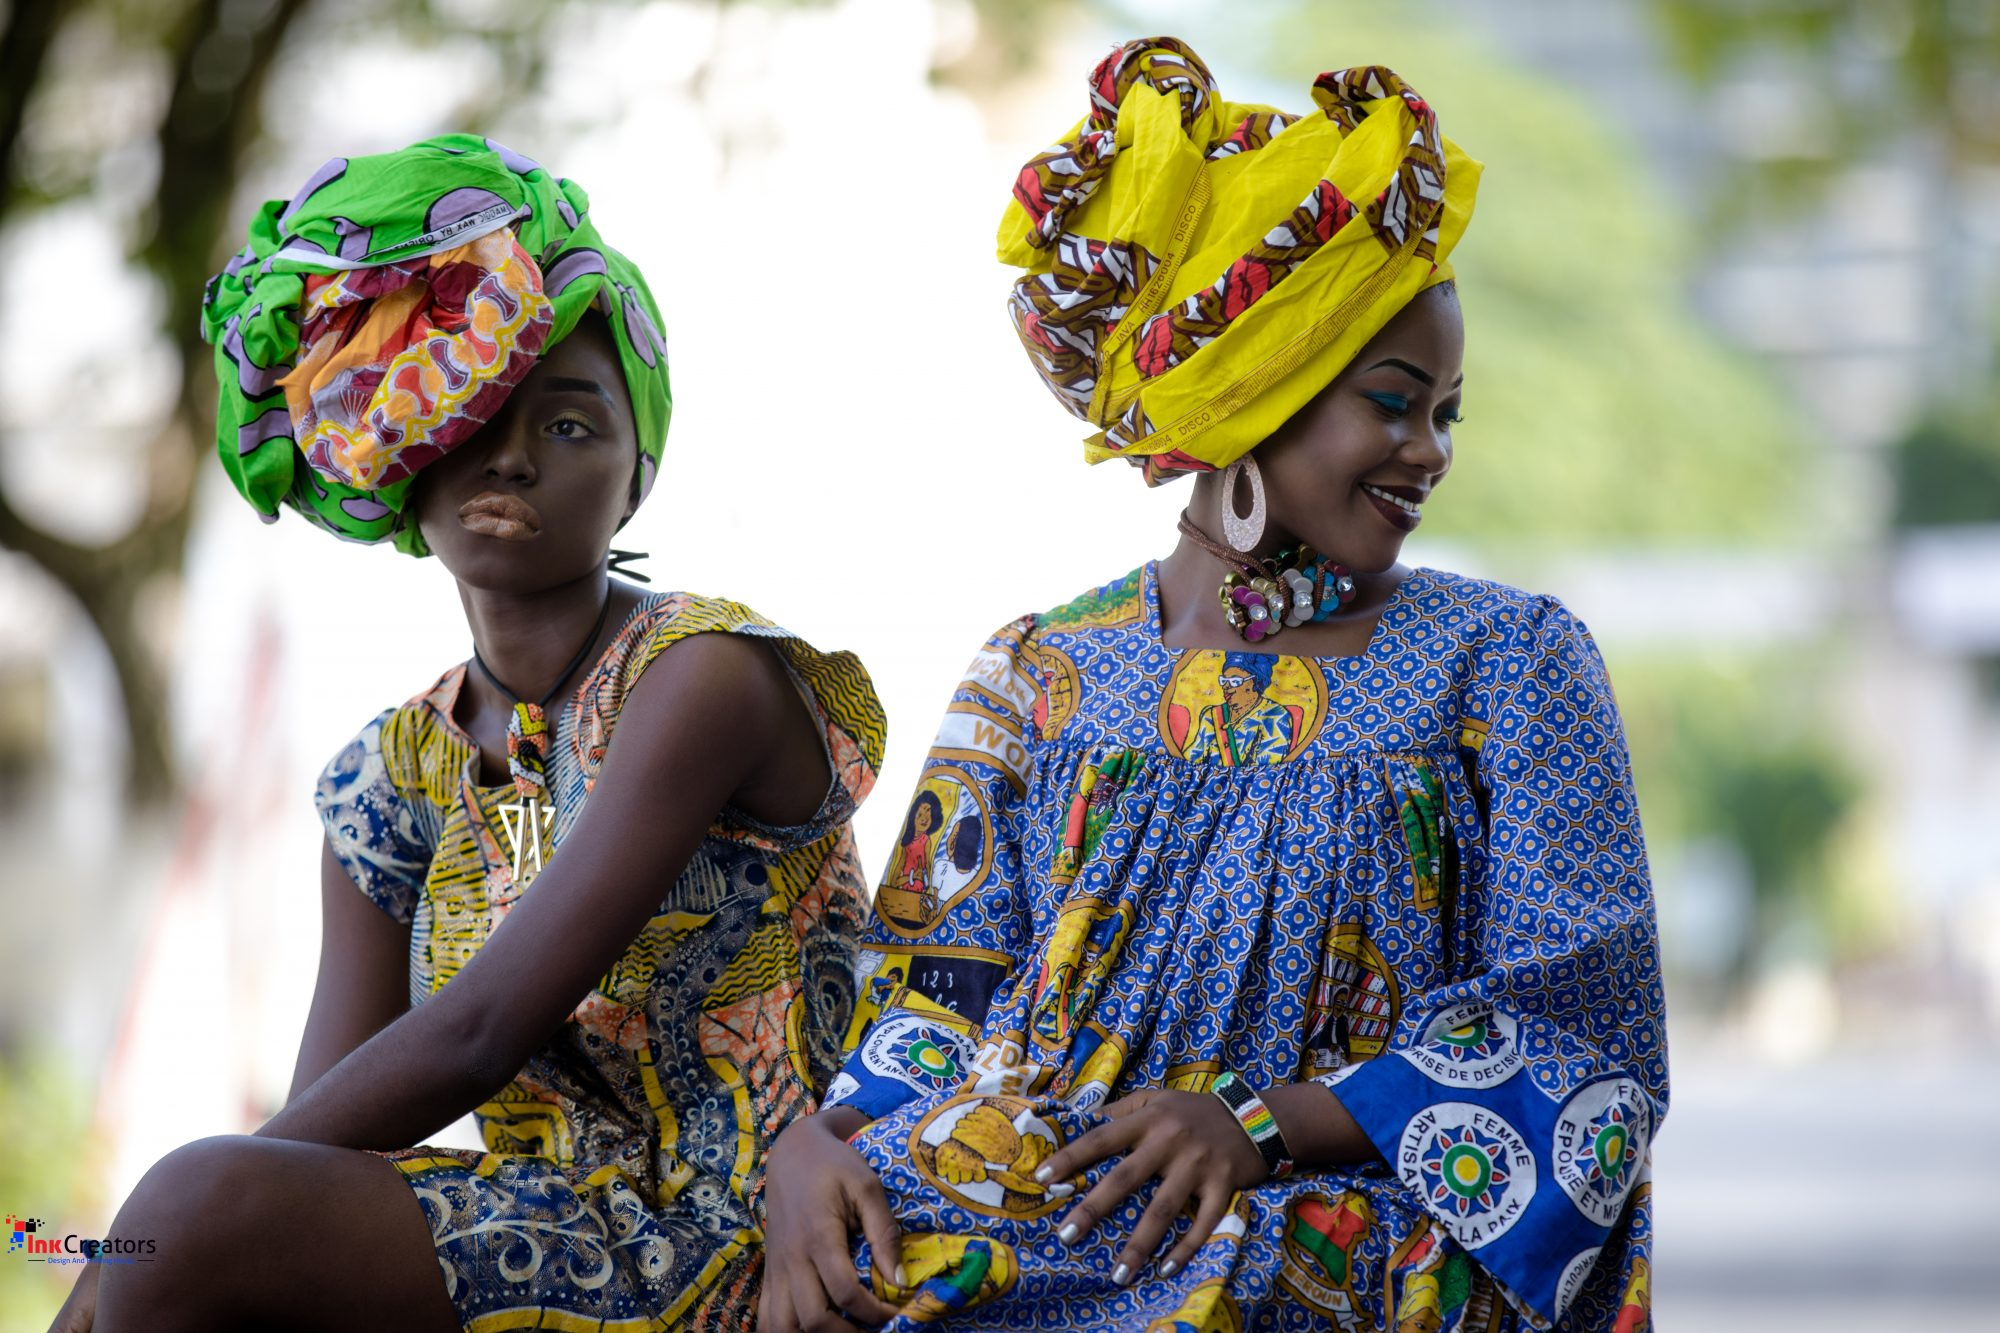 SPRING PRINTS INSPIRED BY CAMEROON FASHION